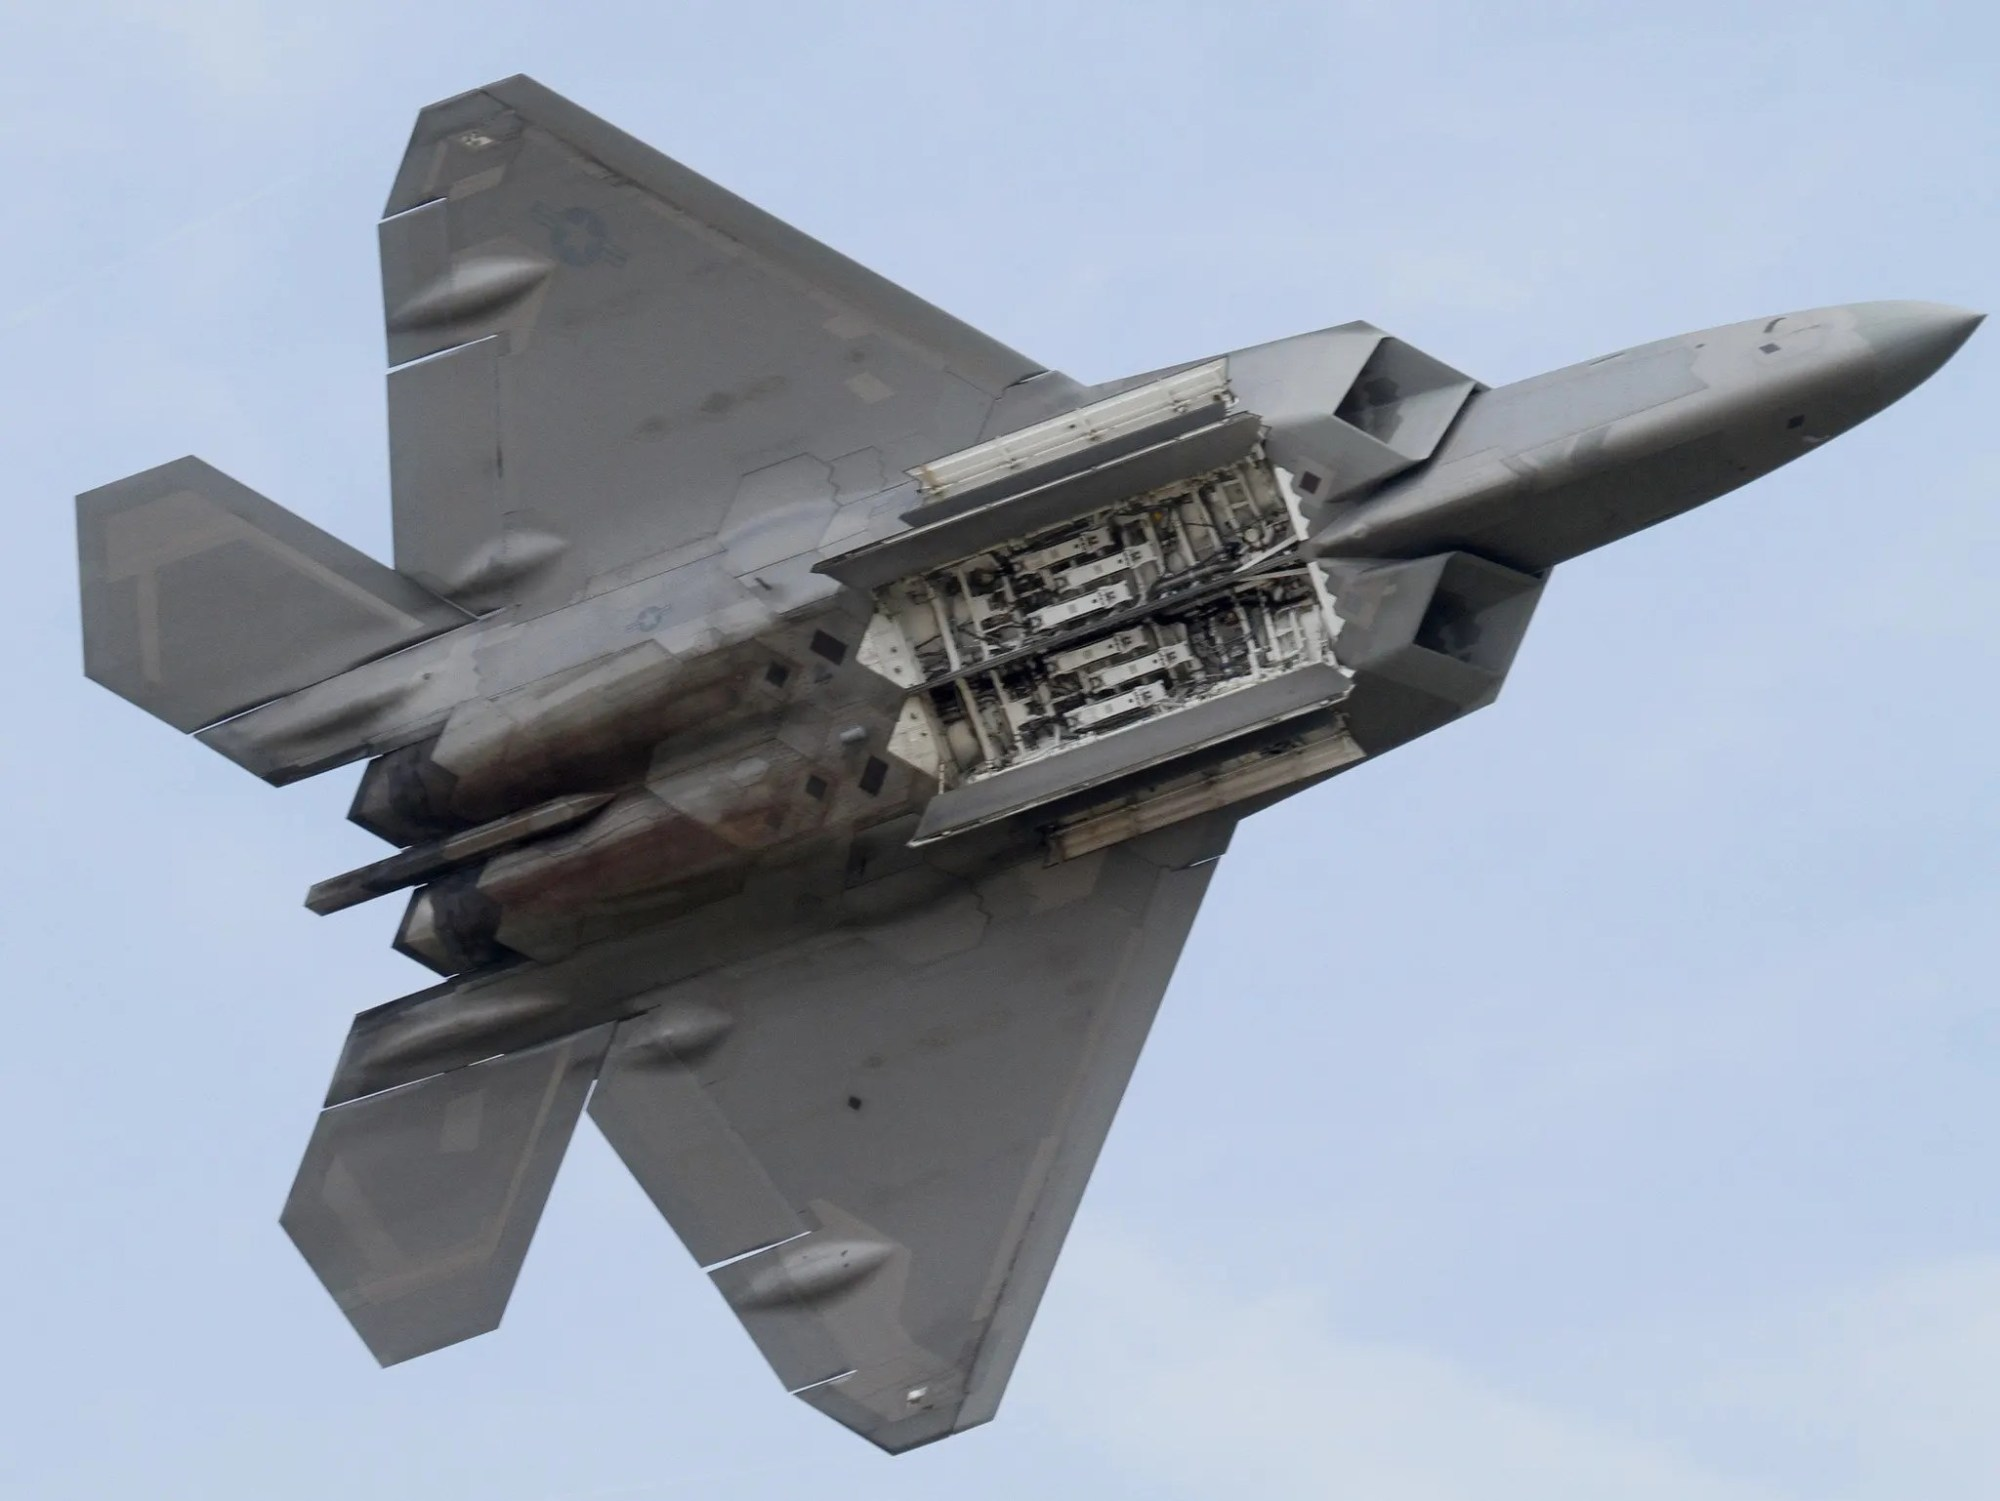 hight resolution of the lockheed martin boeing f 22 raptor is a single seat twin engine fifth generation super maneuverable fighter aircraft that uses stealth technology